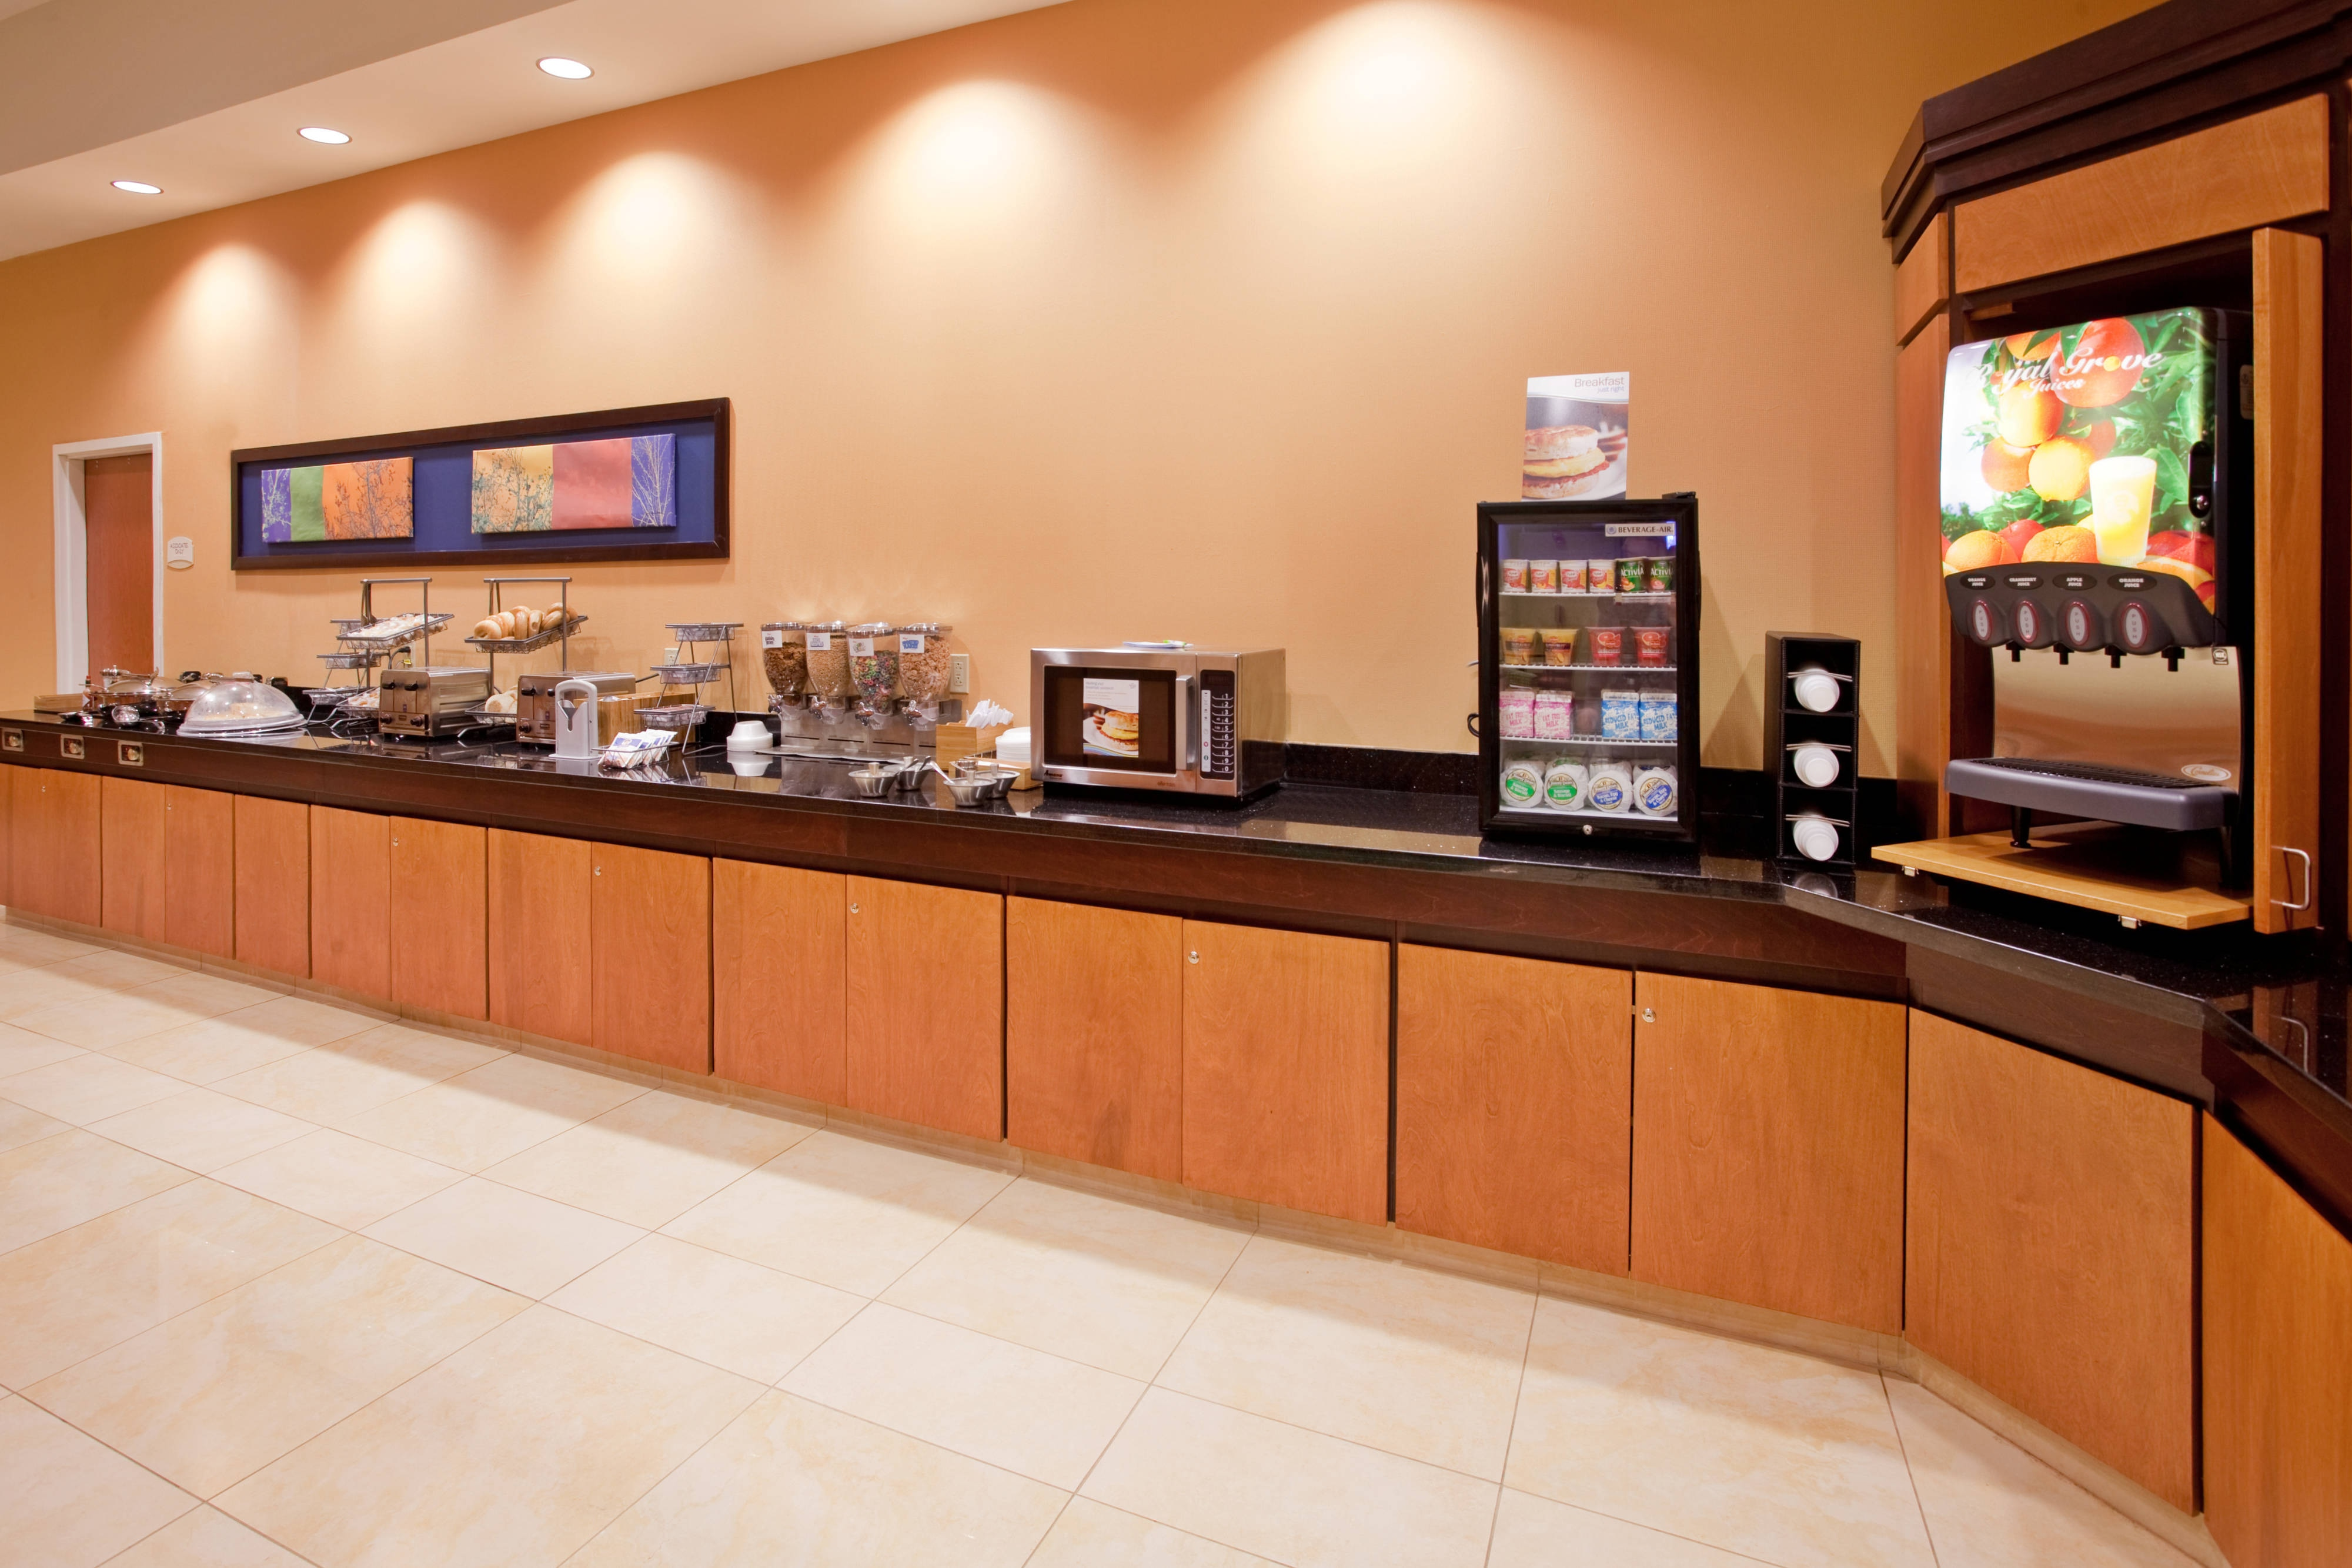 Fairfield Inn & Suites Kearney Complimentary Breakfast Buffet